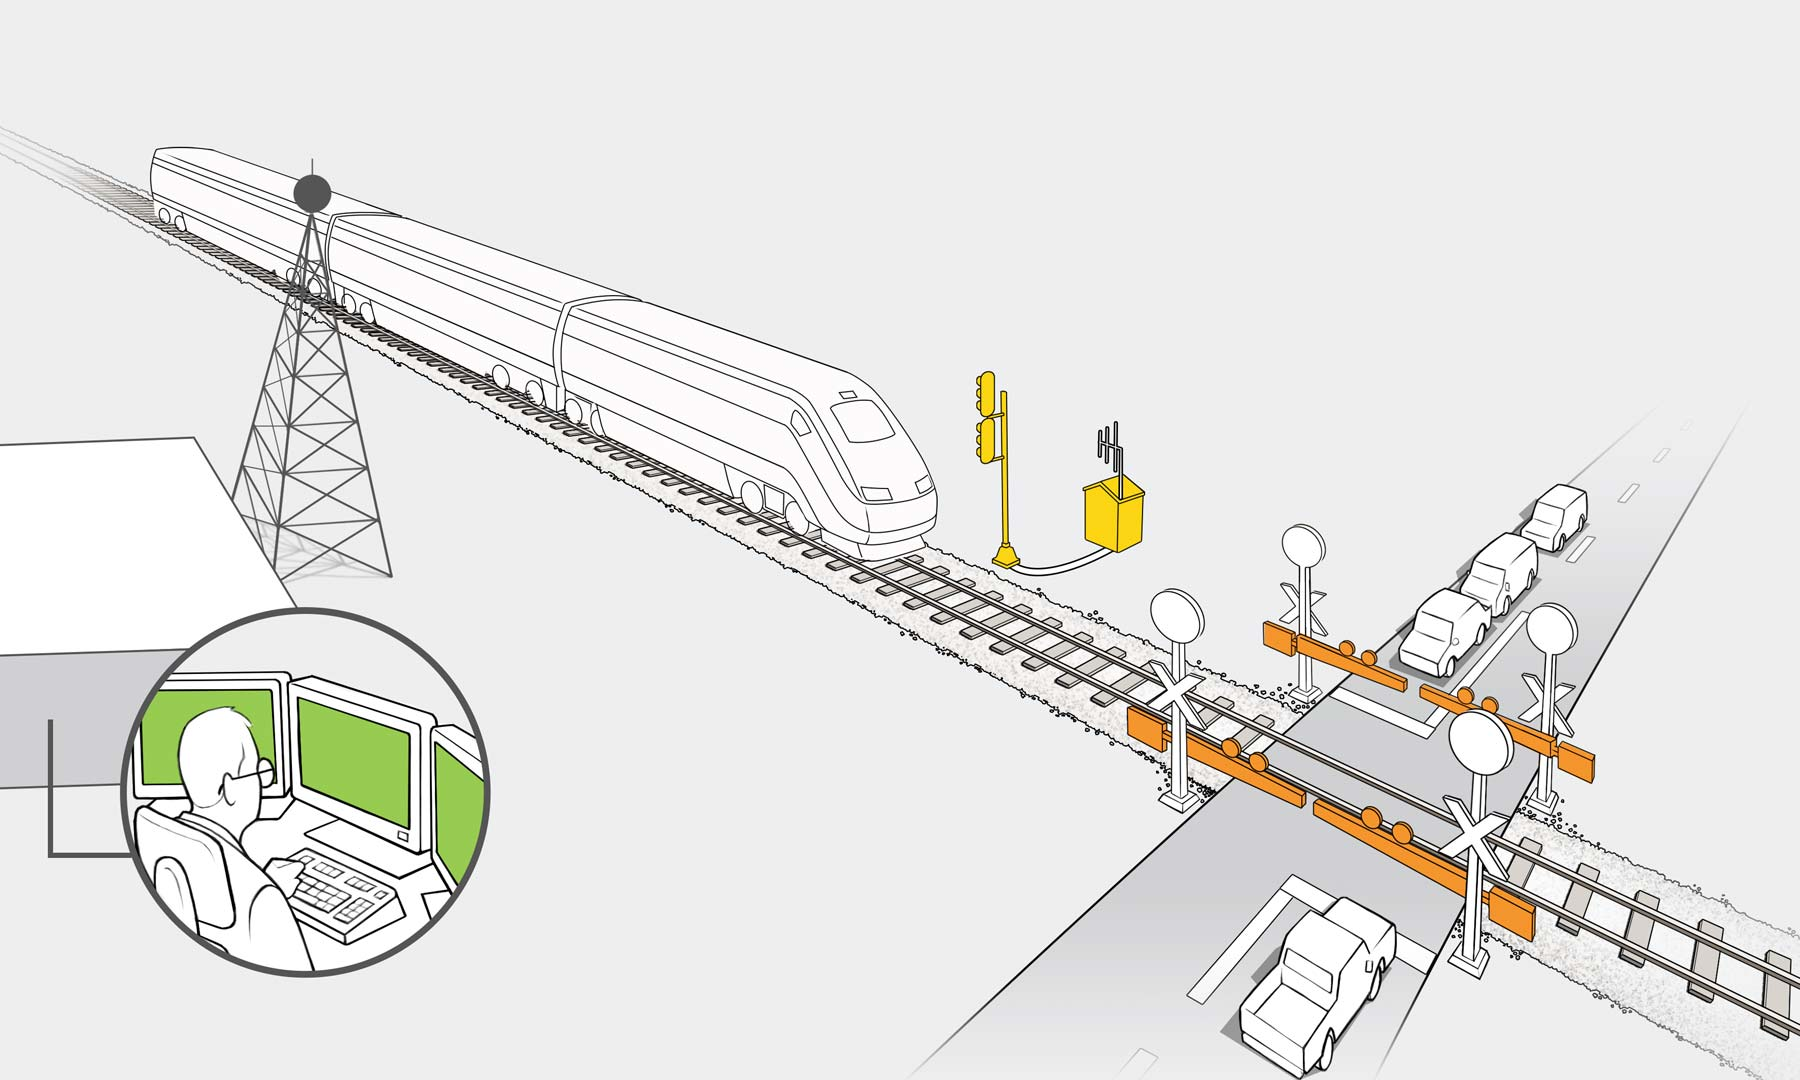 Illustration with a high-speed train crossing diagonally through the scene, a satellite, radar, and tower are communicating with the train; vehicles are parked at gates which are blocking the track as the train passes; an operator is monitoring conditions from computers.